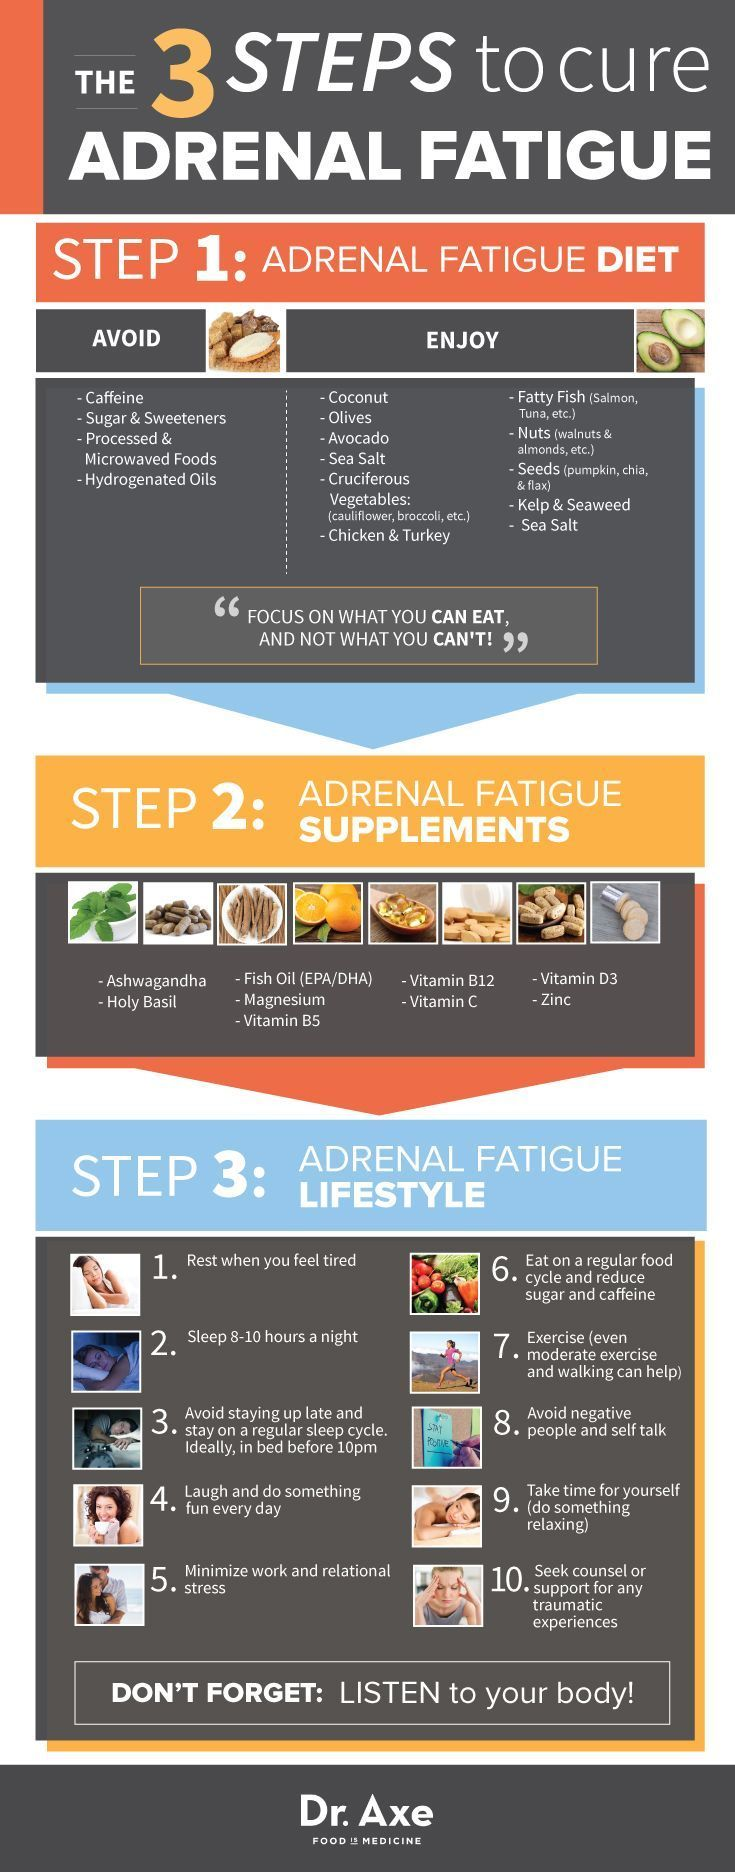 3 Steps to Heal Adrenal Fatigue Naturally - Dr. Axe Steps to Heal Adrenal Fatigue http://www.draxe.com #health #holistic #natural